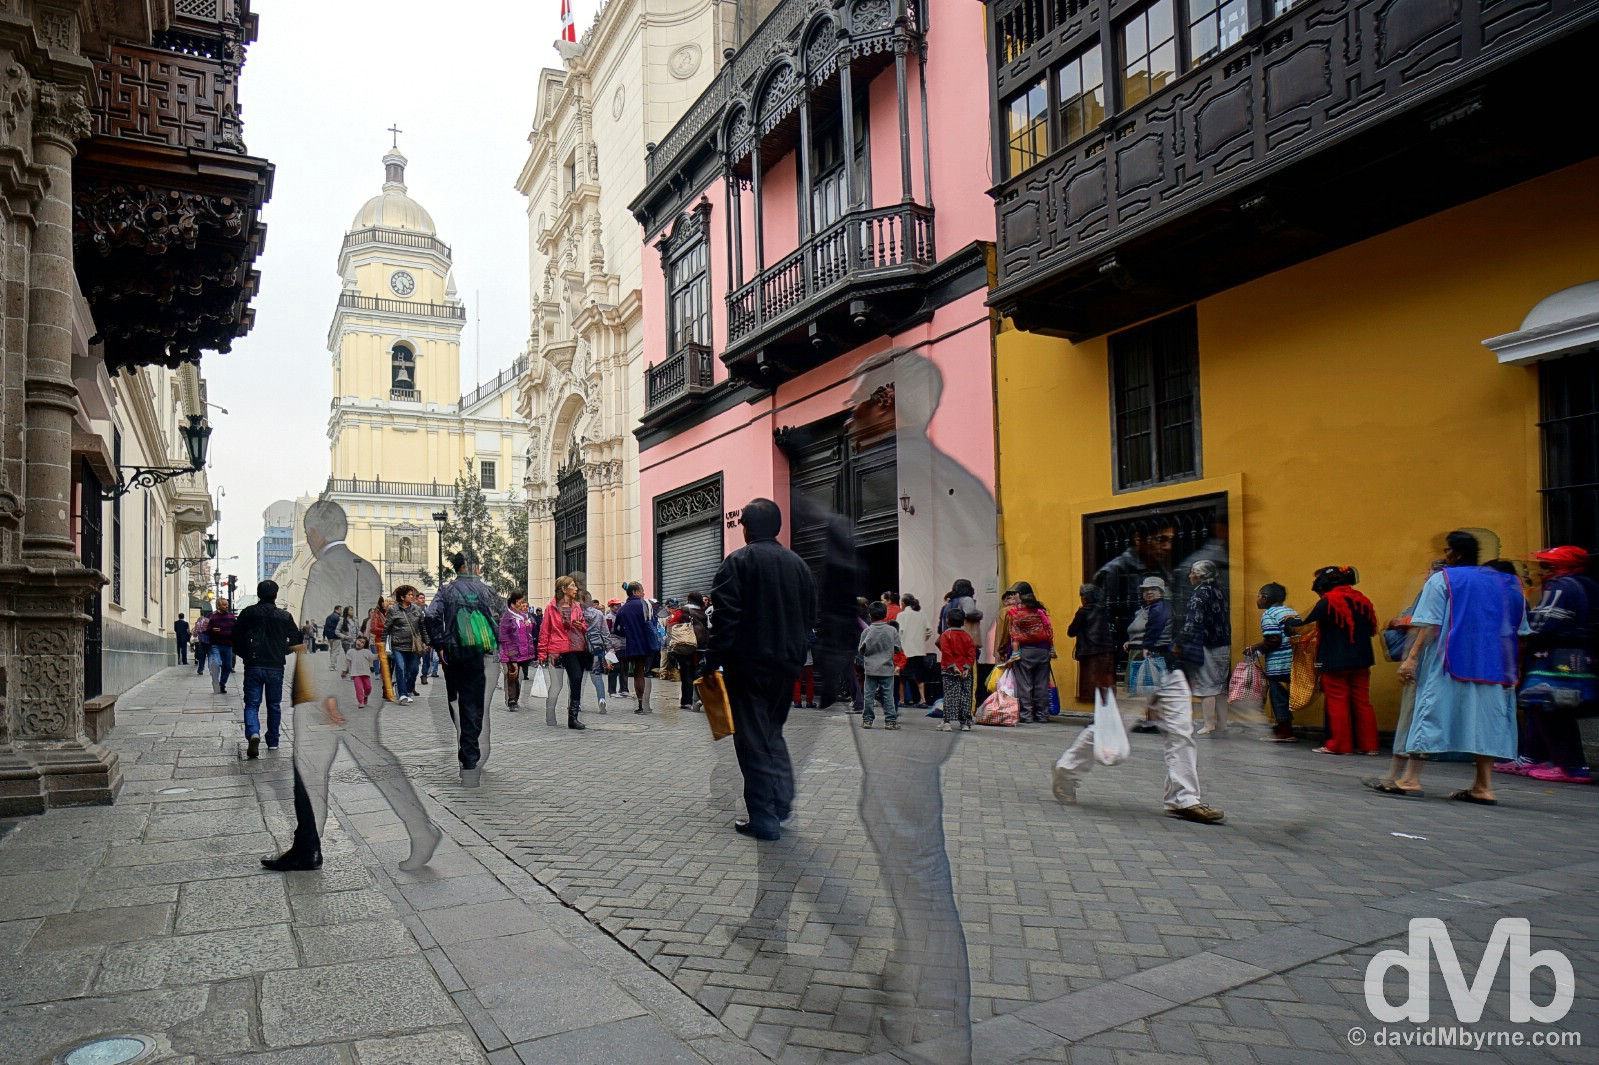 Architecture & pedestrians on Jiron Ucayali in Lima Centro, Lima, Peru. August 7, 2015.